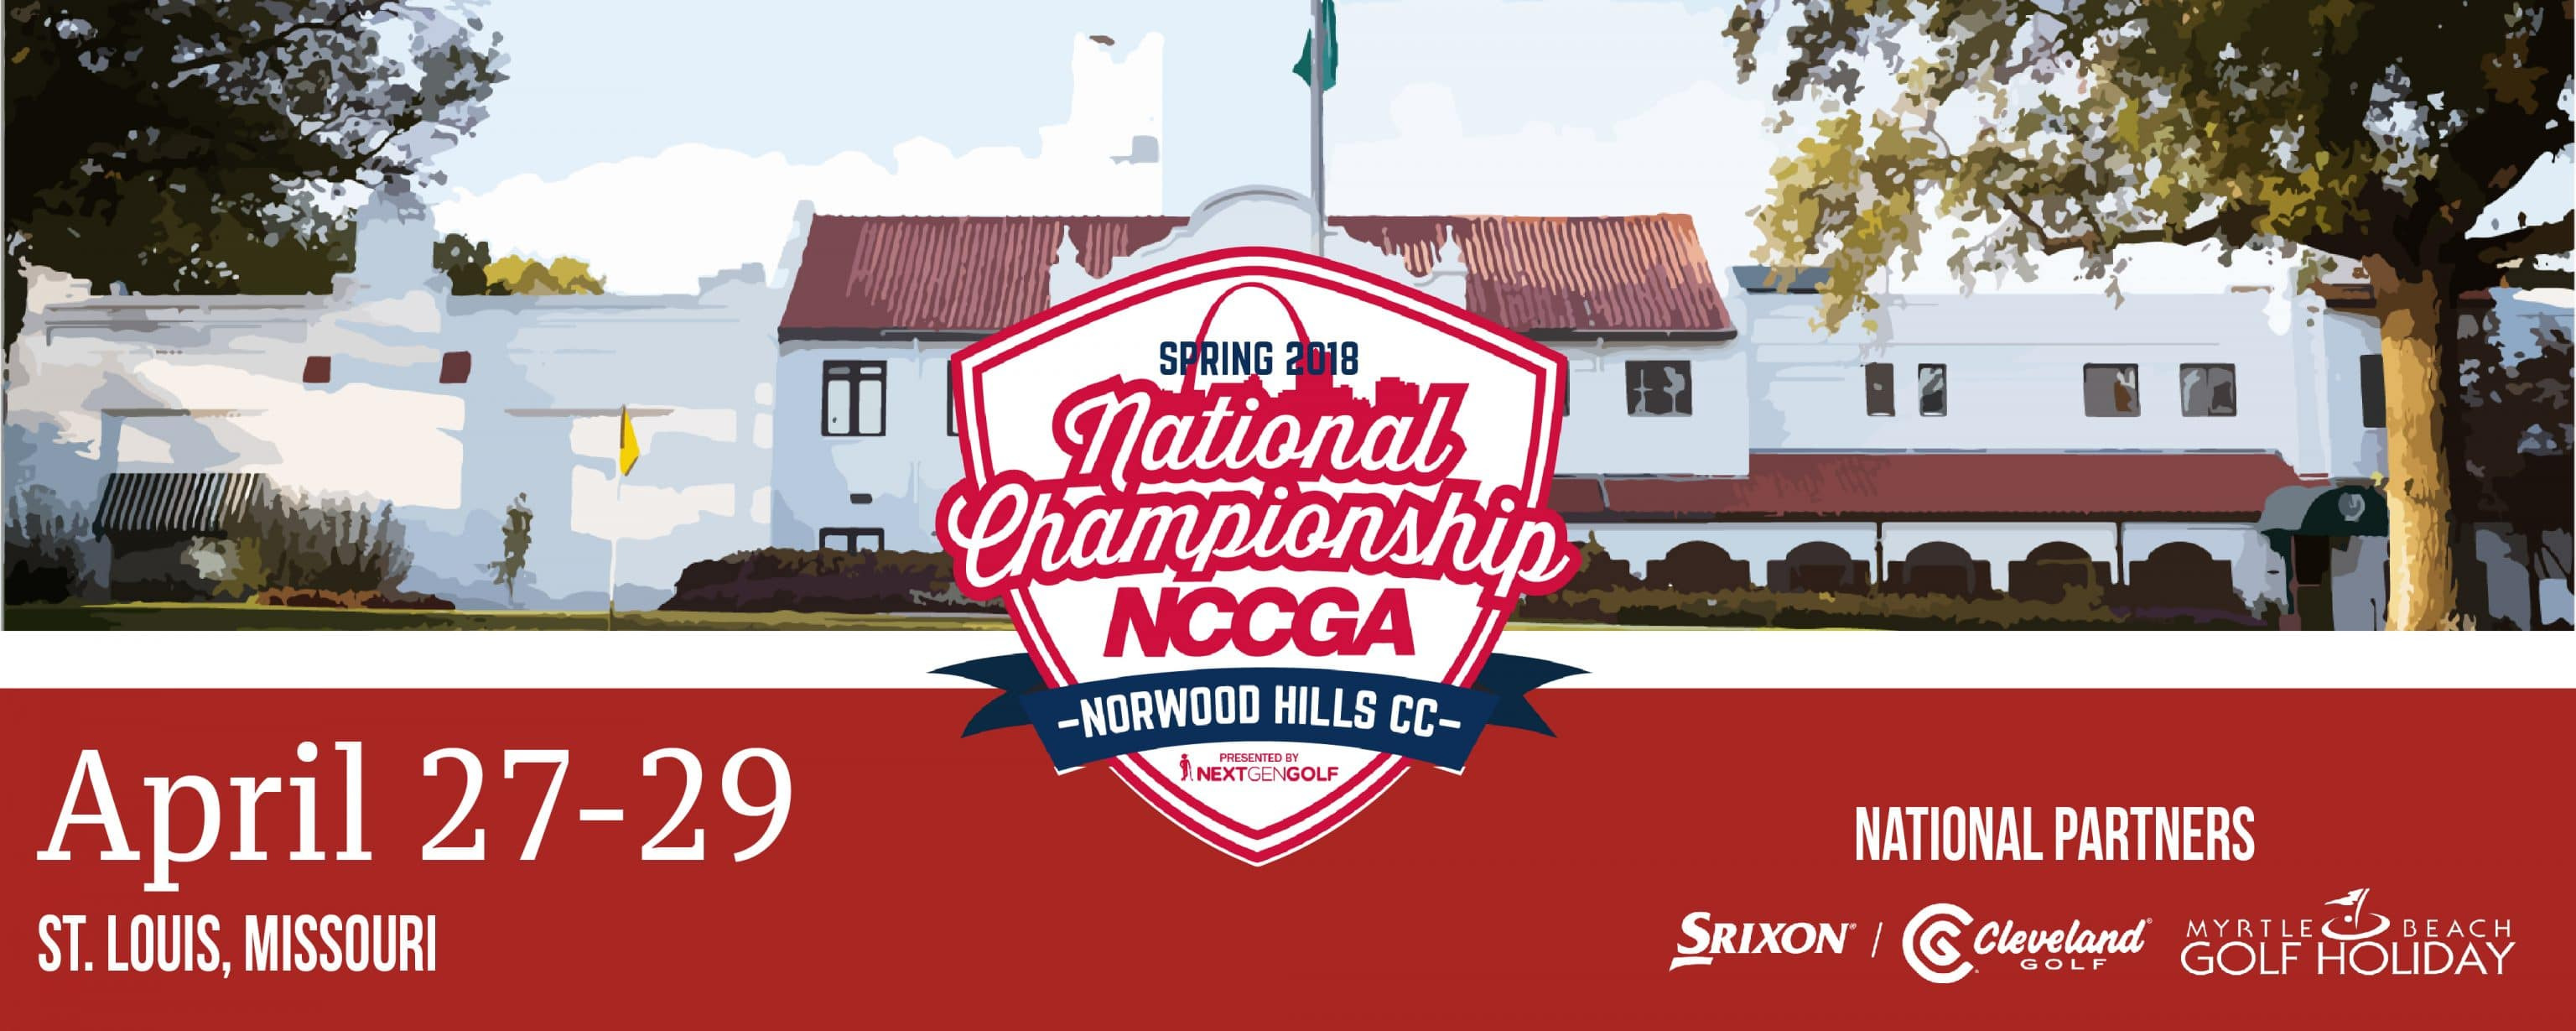 National Championship Spring 2018